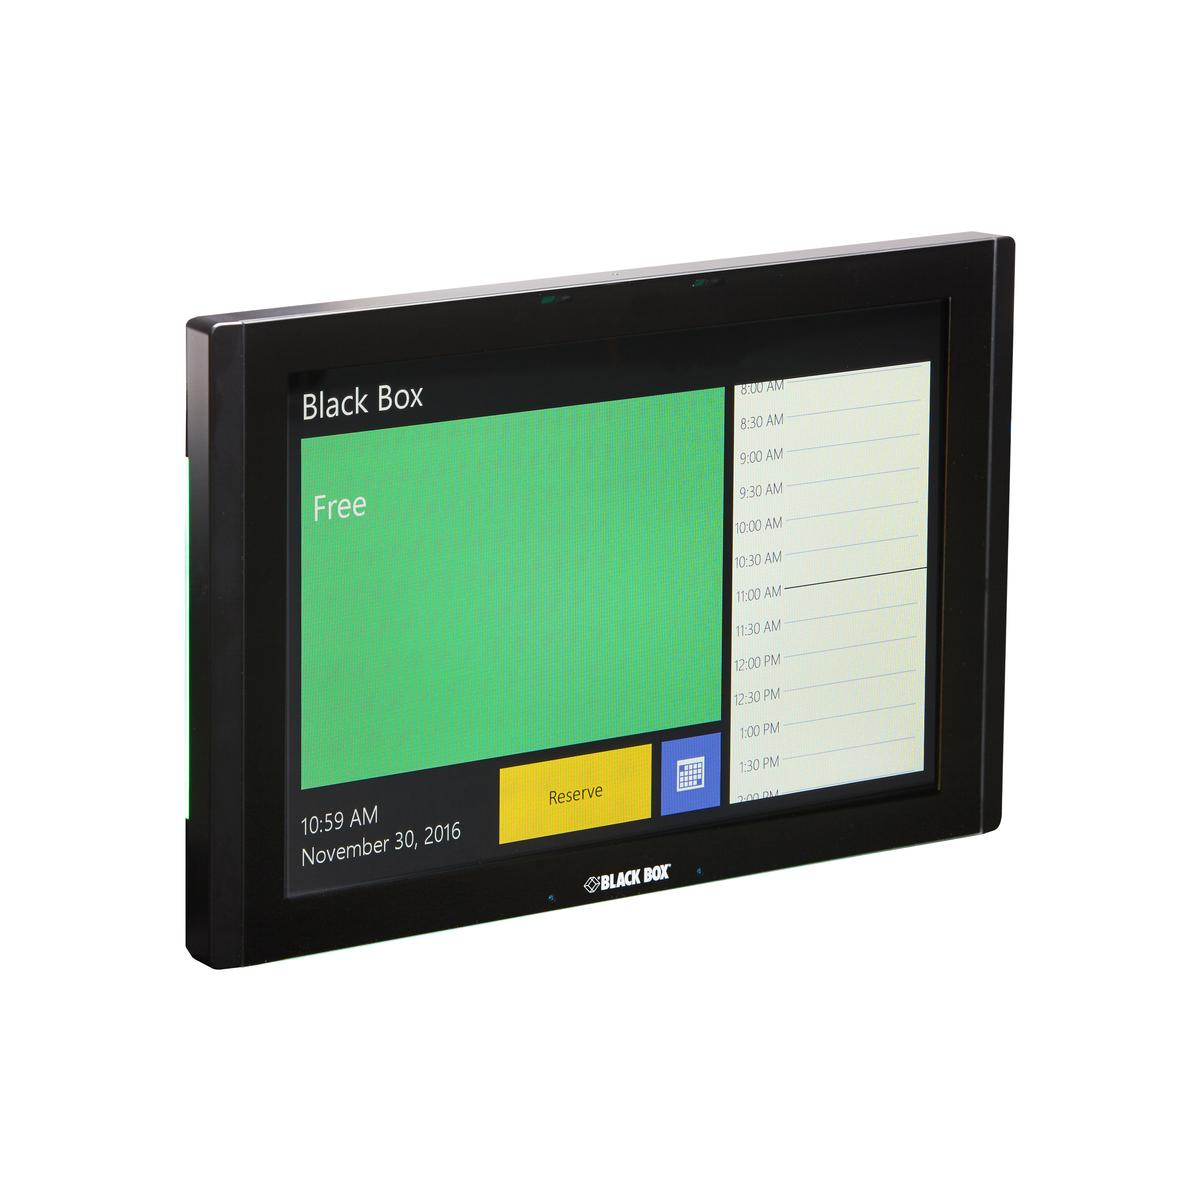 Black Box - RS-TOUCH12-W